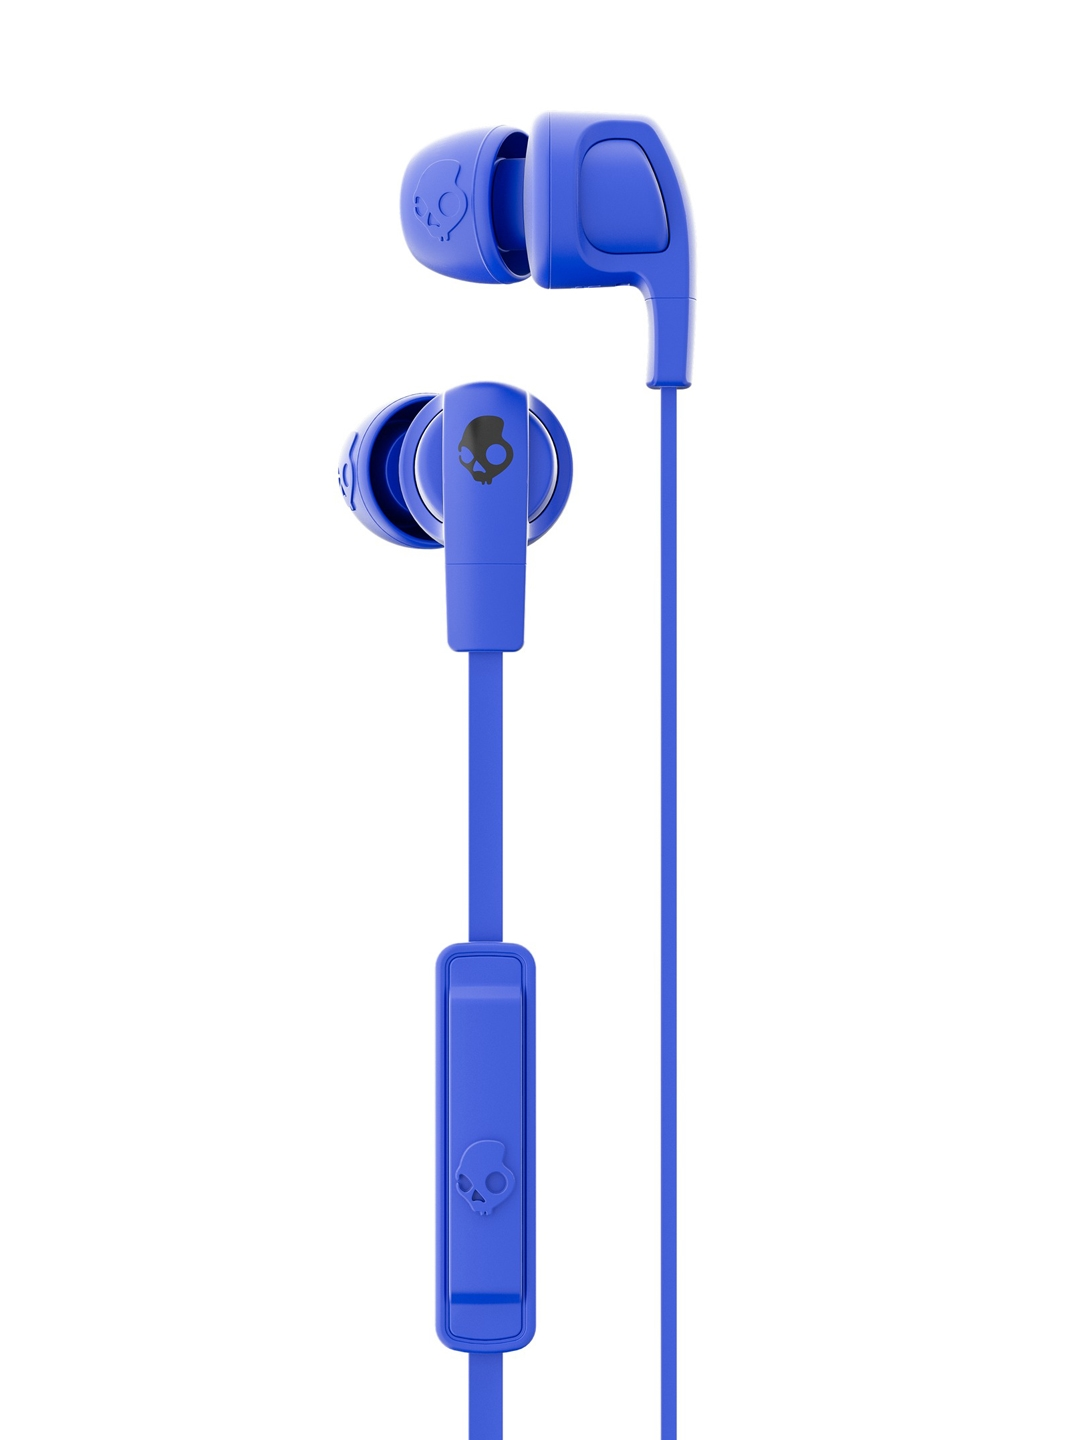 2e7b7bda4b2 Buy Skullcandy Blue Smokin Buds 2 In Ear Headphones With Mic   Remote -  Headphones for Unisex 1819181